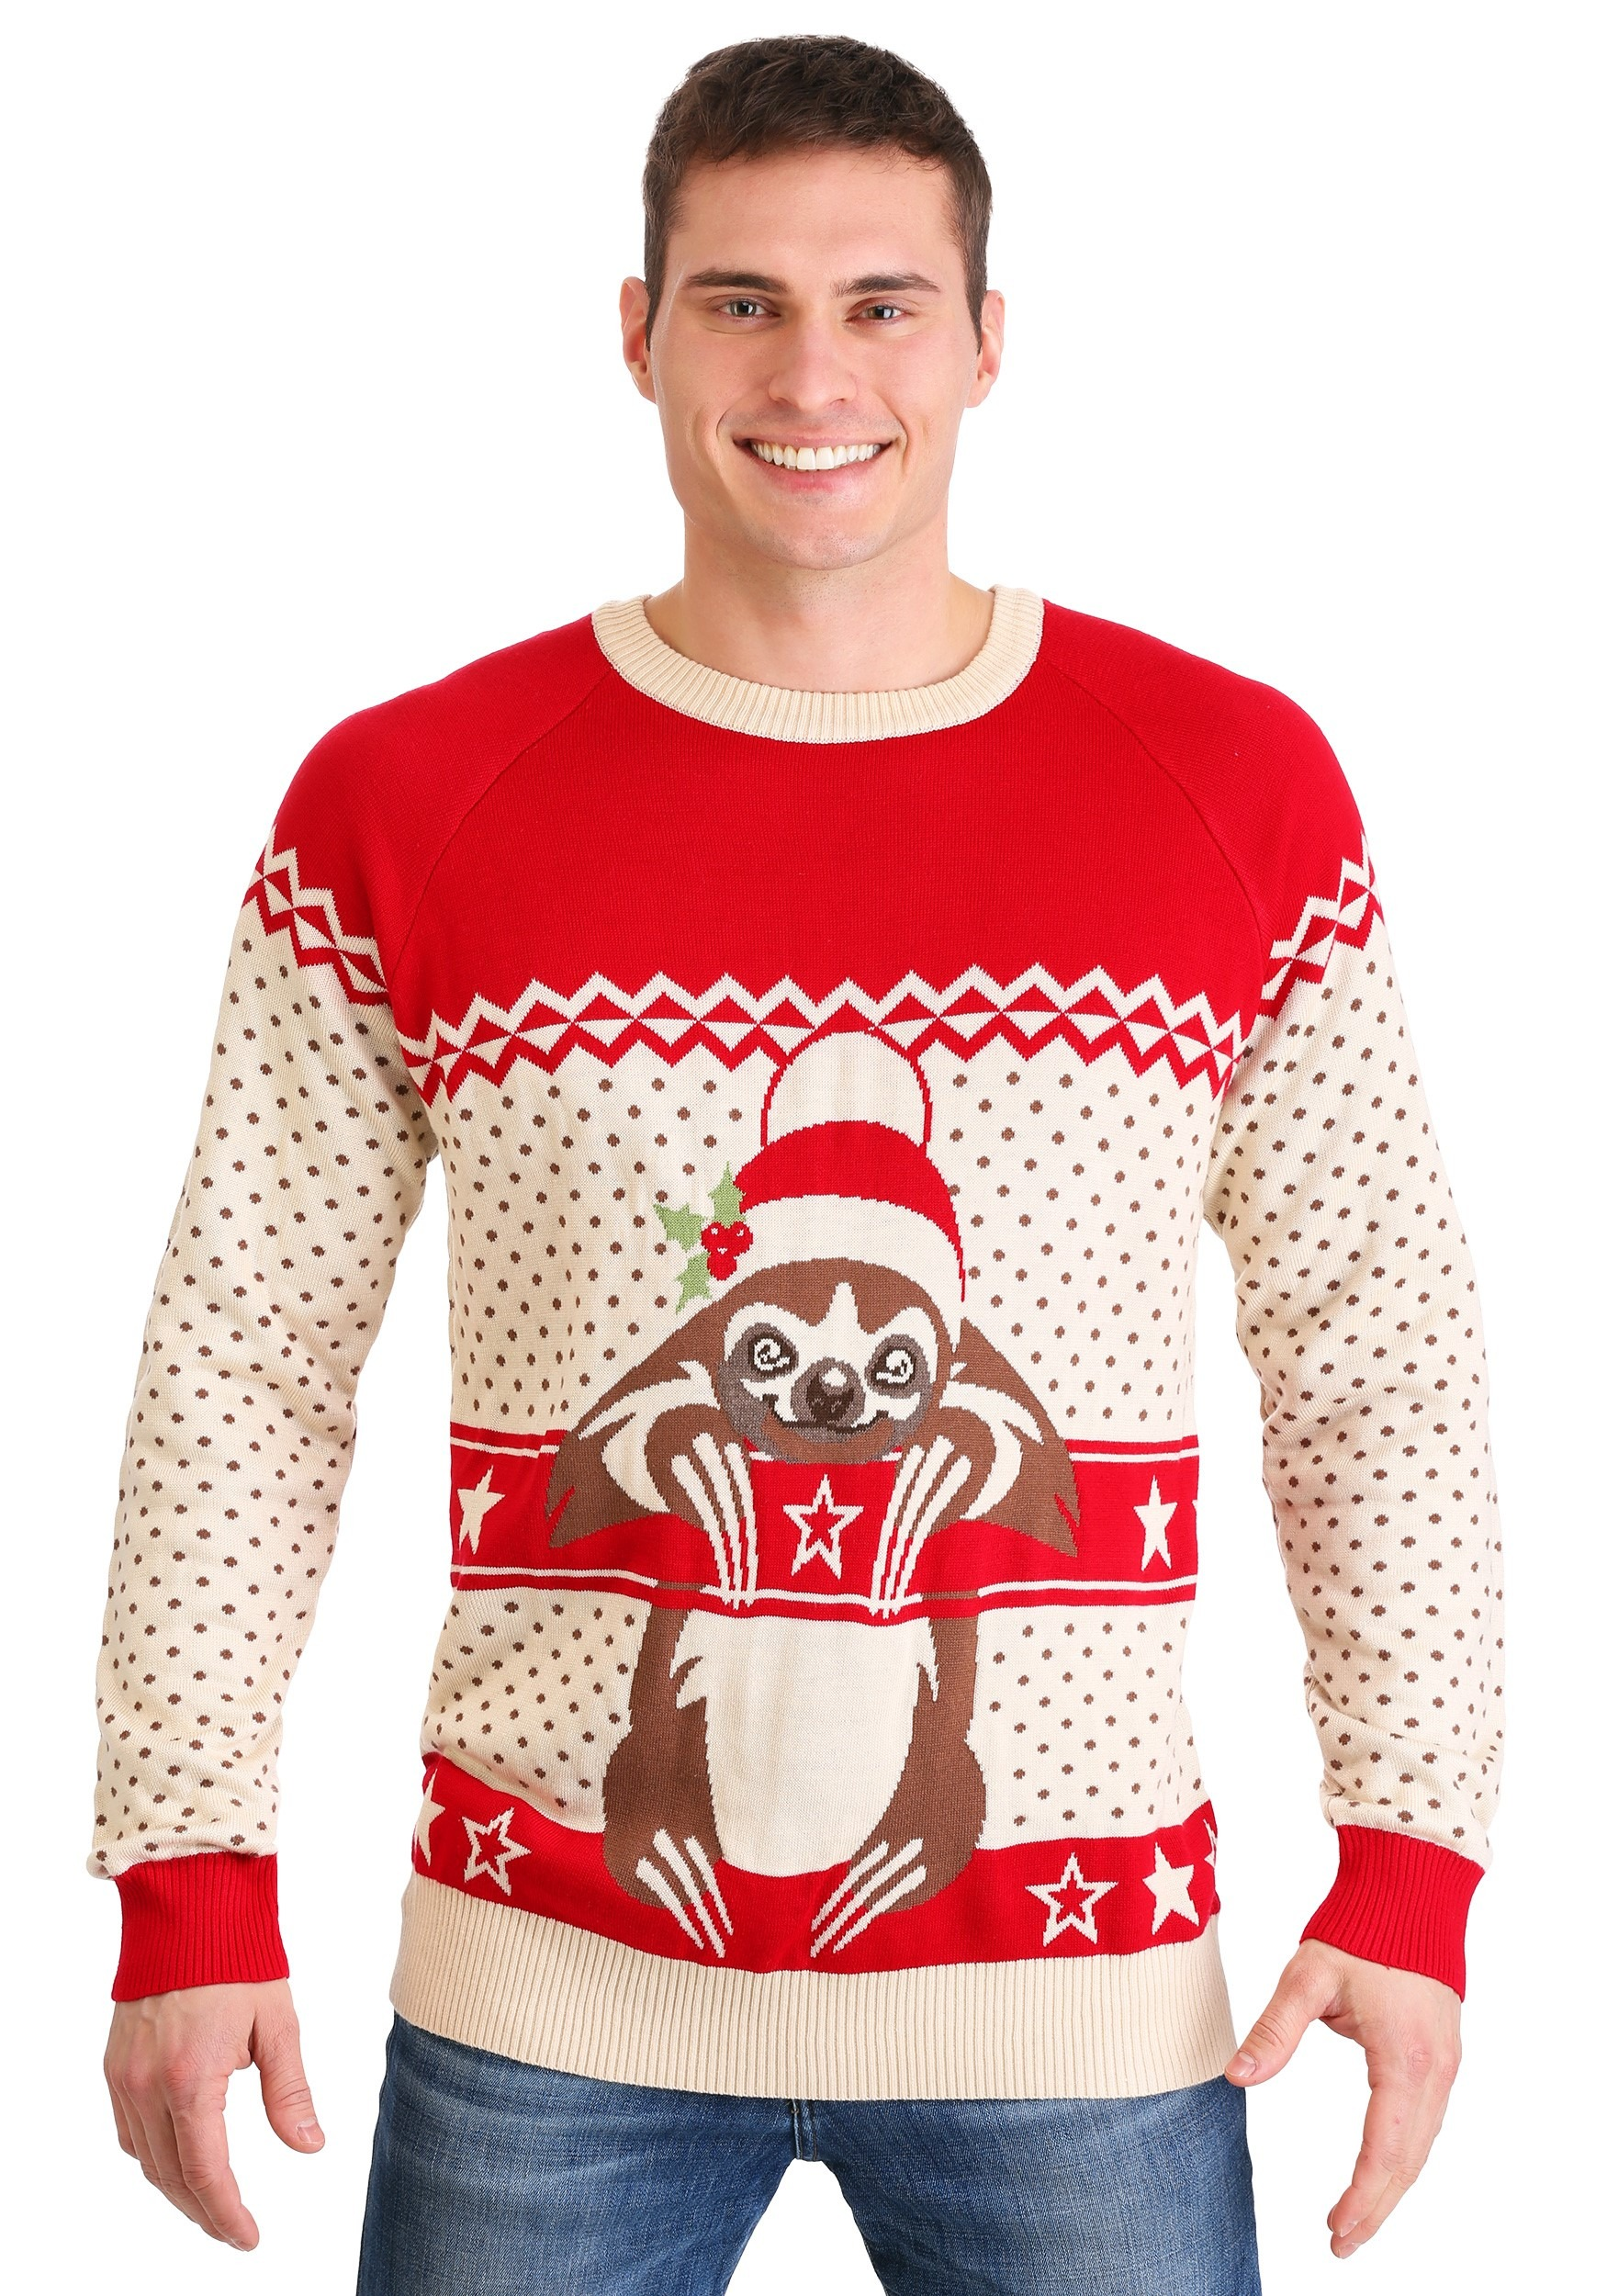 Sloth Ugly Christmas Sweater for Adults